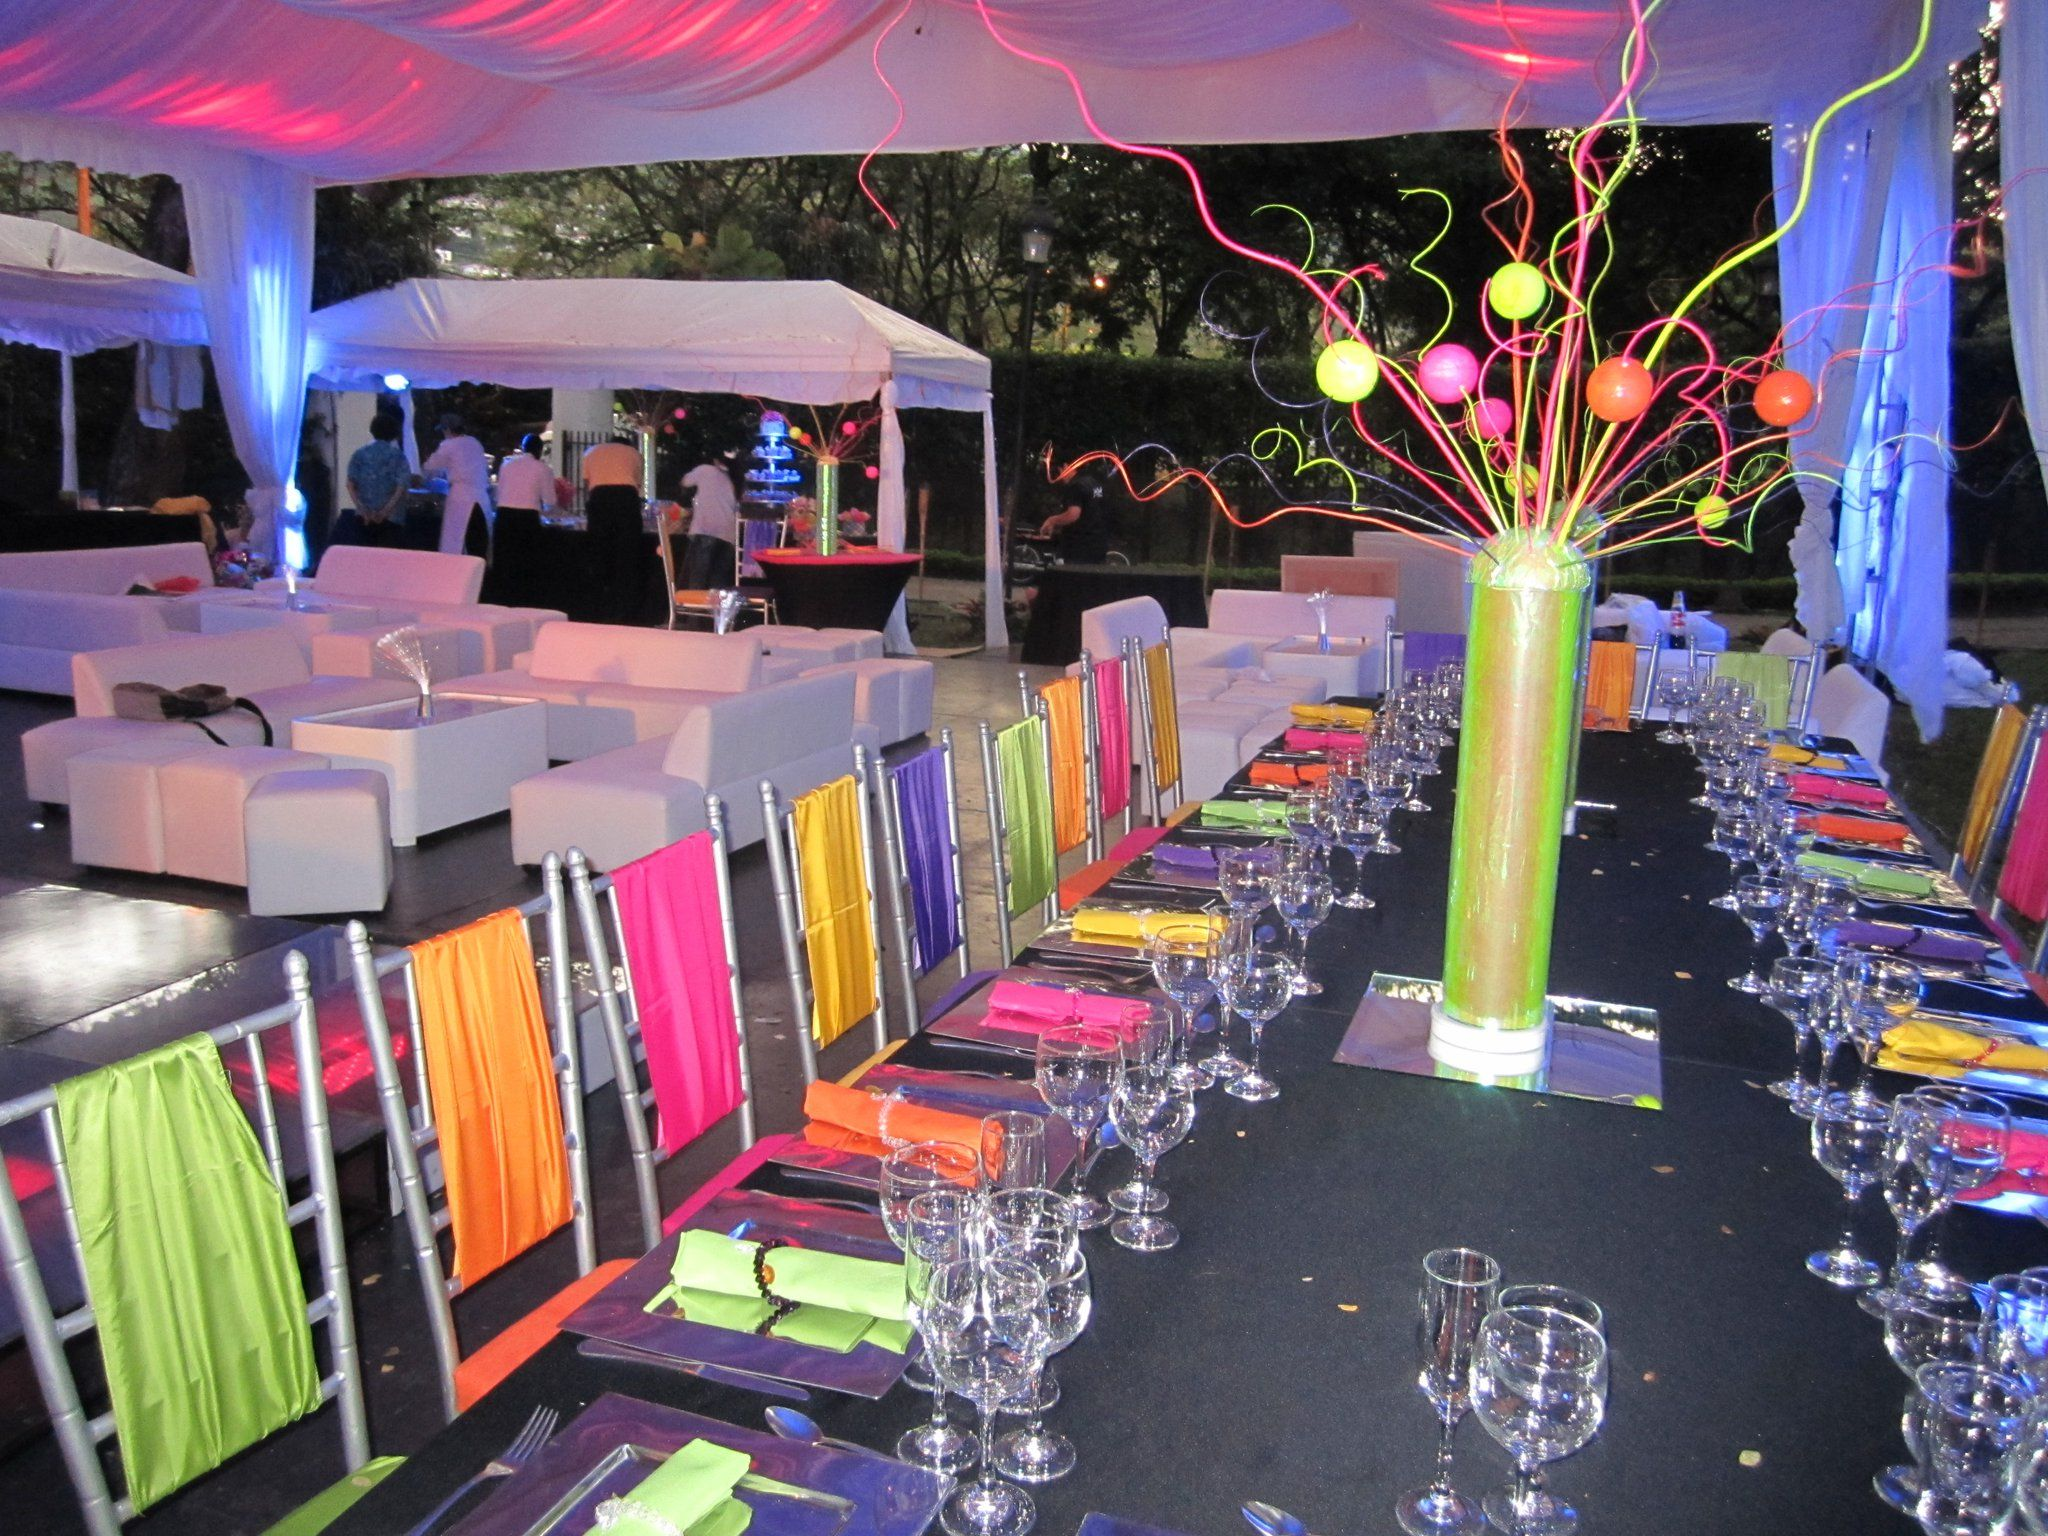 Decoraci n fiesta neon ideas para fiesta pinterest - Decoracion de pared ...